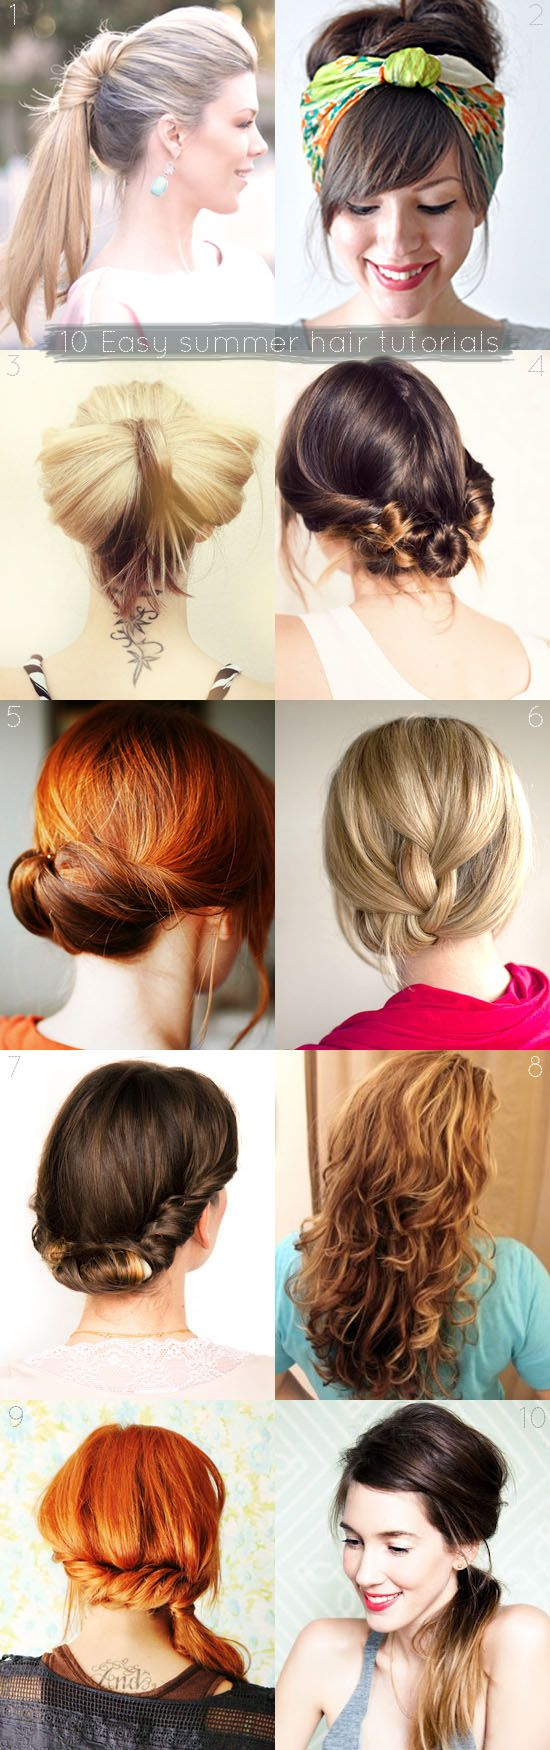 10 easy and quick summer hair tutorials. For when you want to look good but it's just to hot to stand in front of the mirror for a long time. . . @ By Wilma